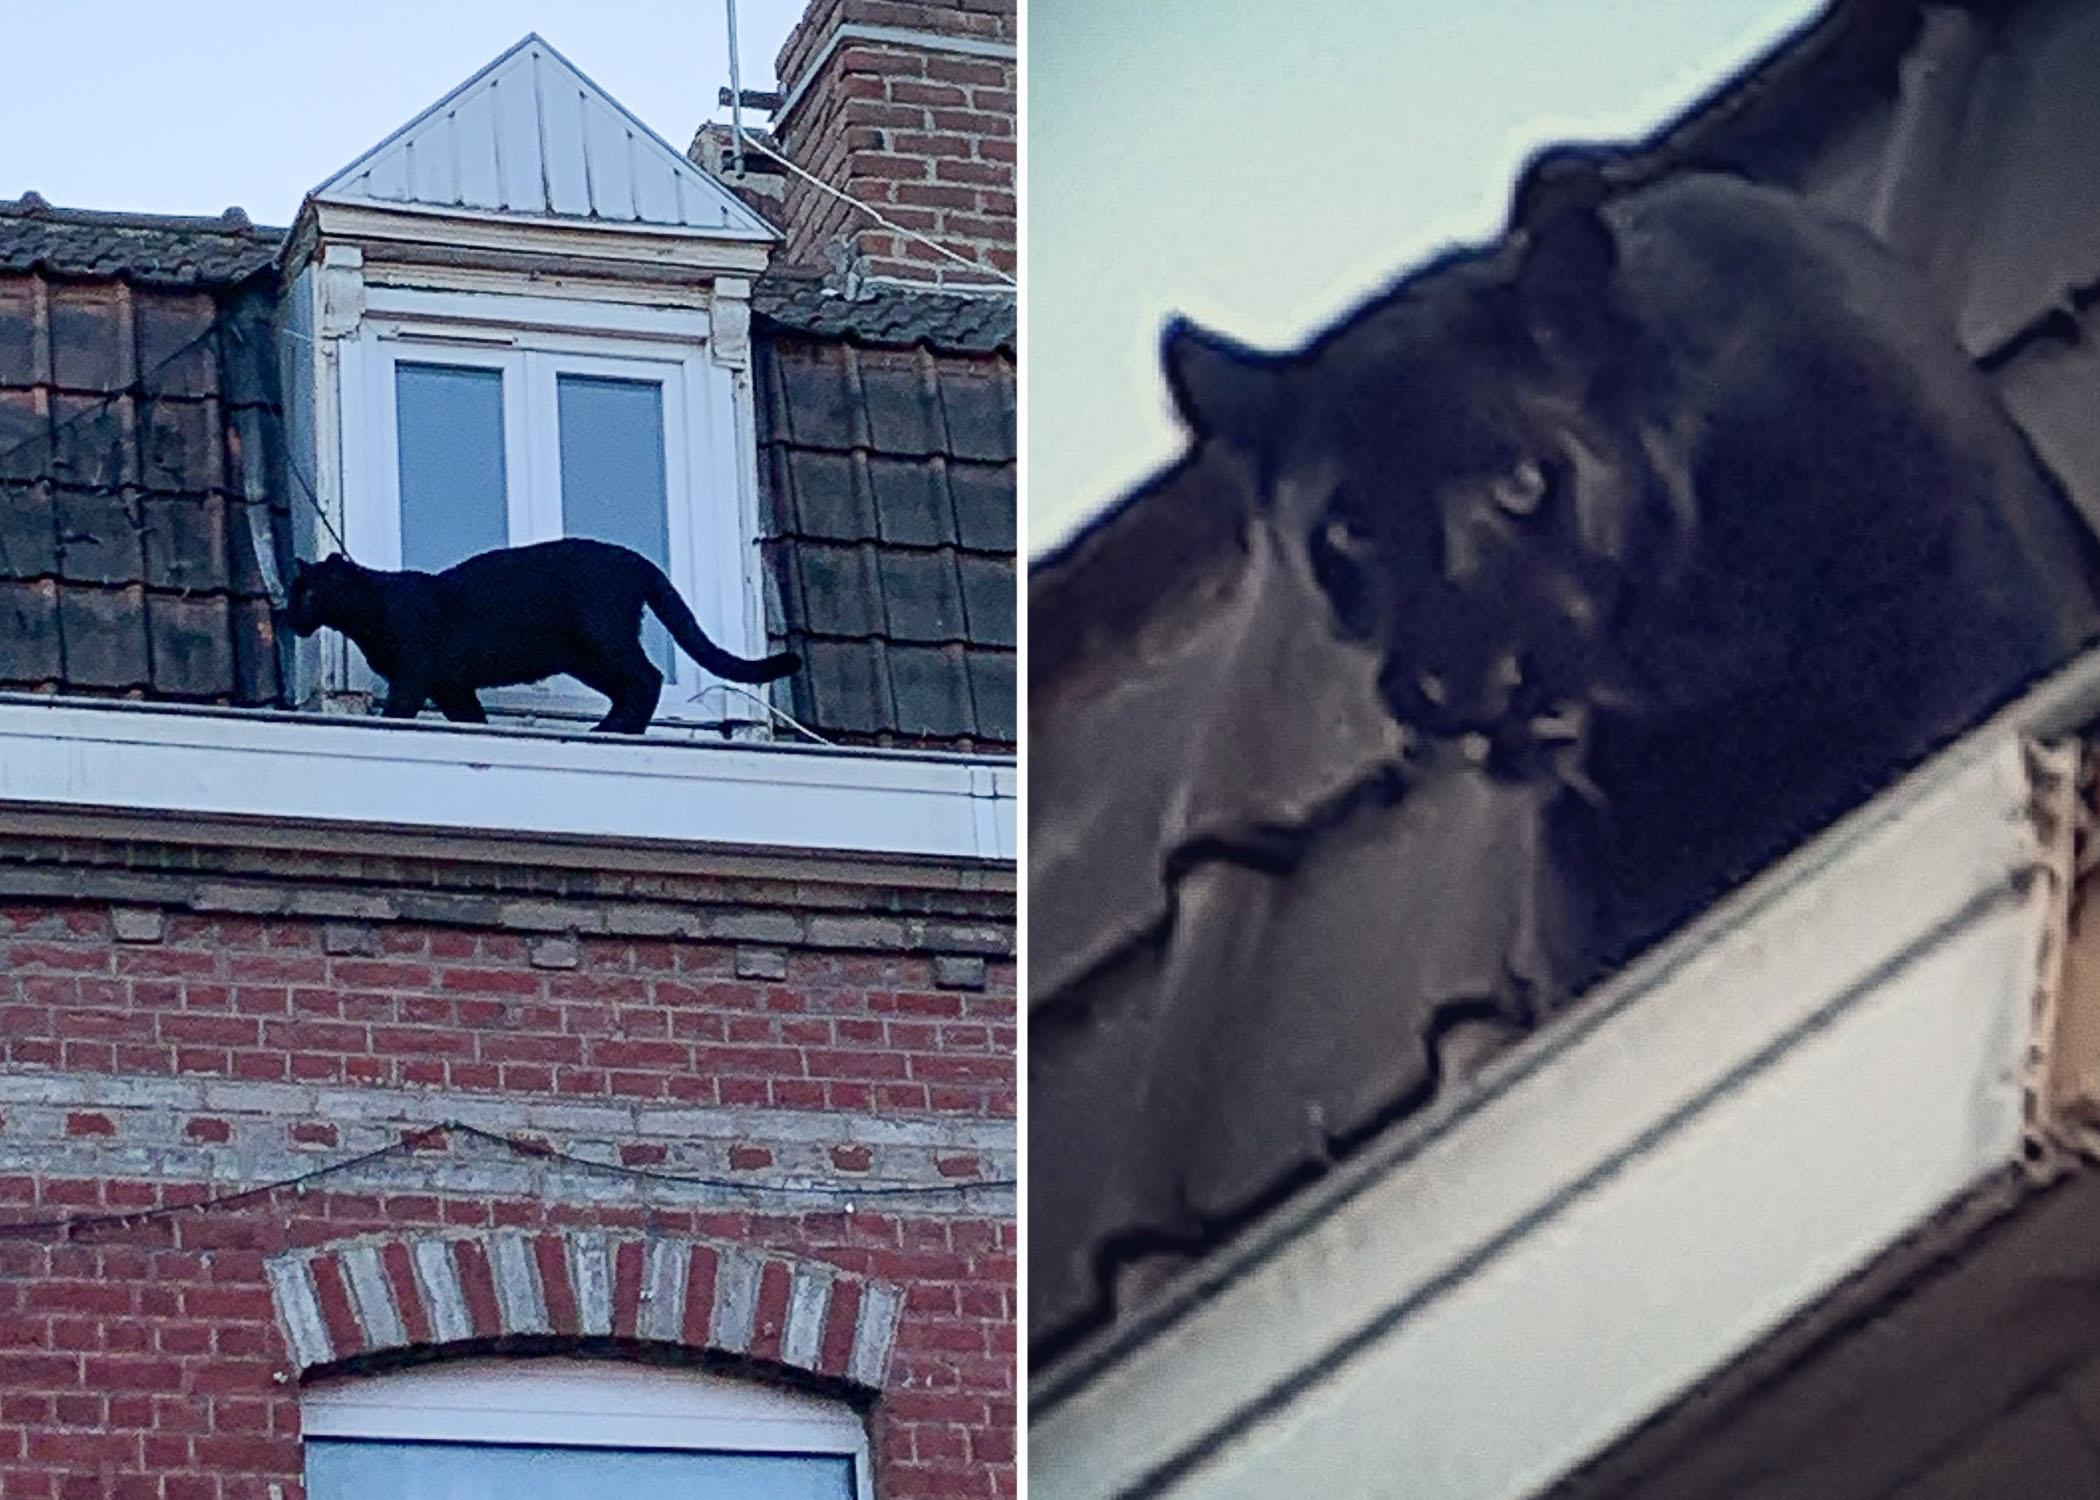 Black panther spotted prowling French rooftops